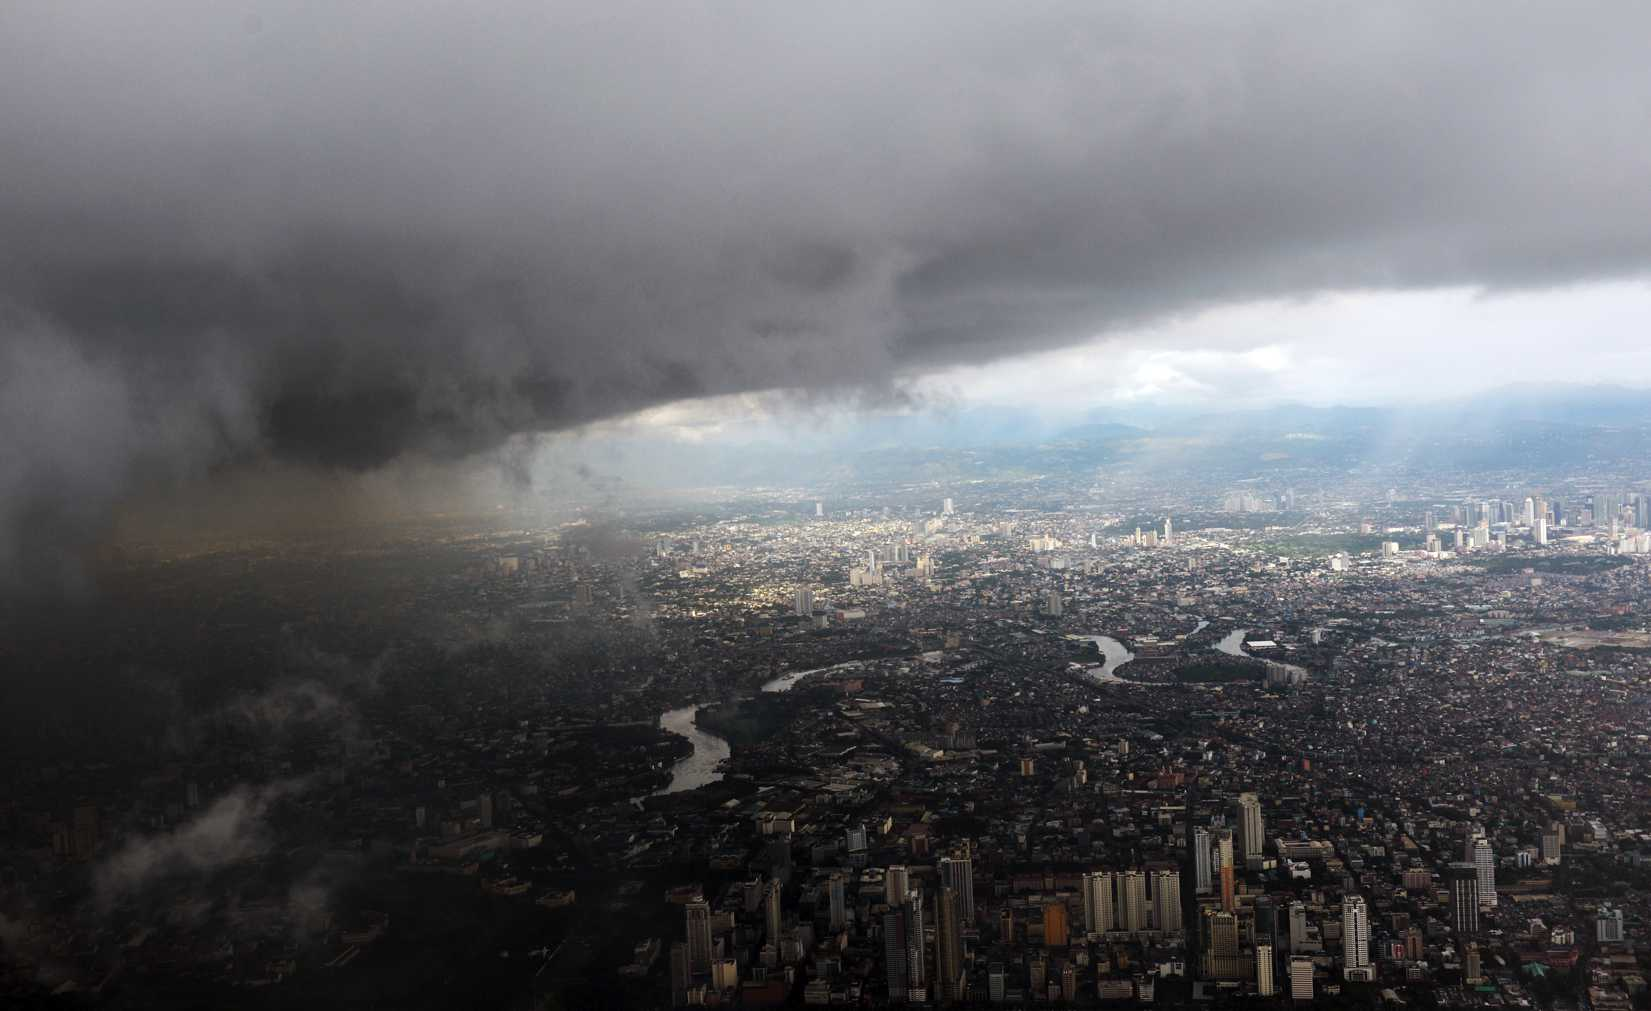 An aerial shot shows clouds above Manila on December 23, 2013.